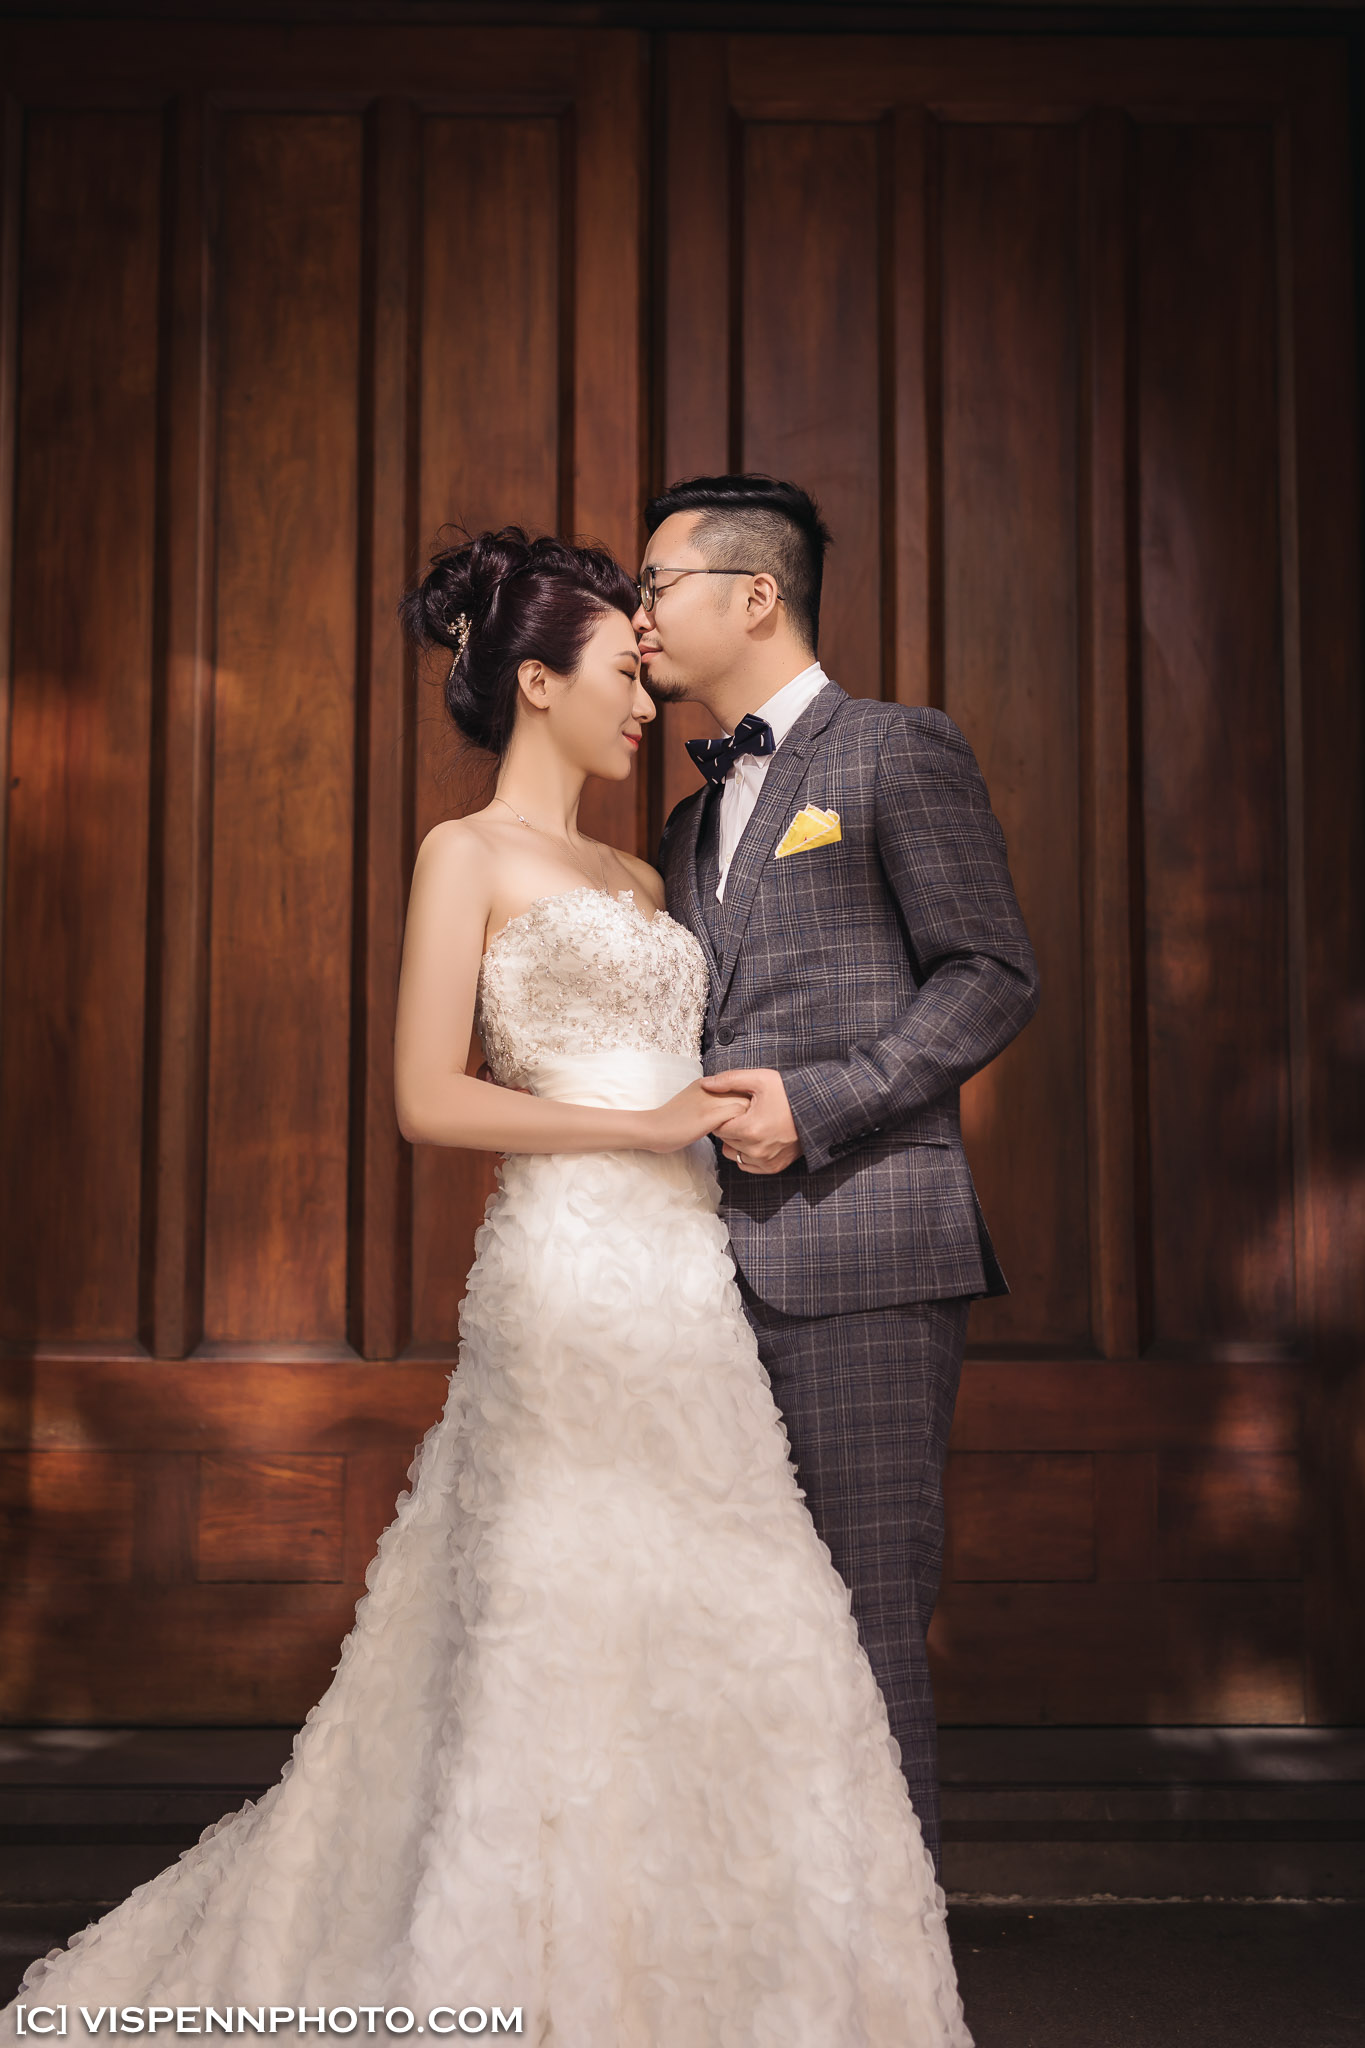 PRE WEDDING Photography Melbourne ZHPENN AmandaXing 2H 5D4 3039